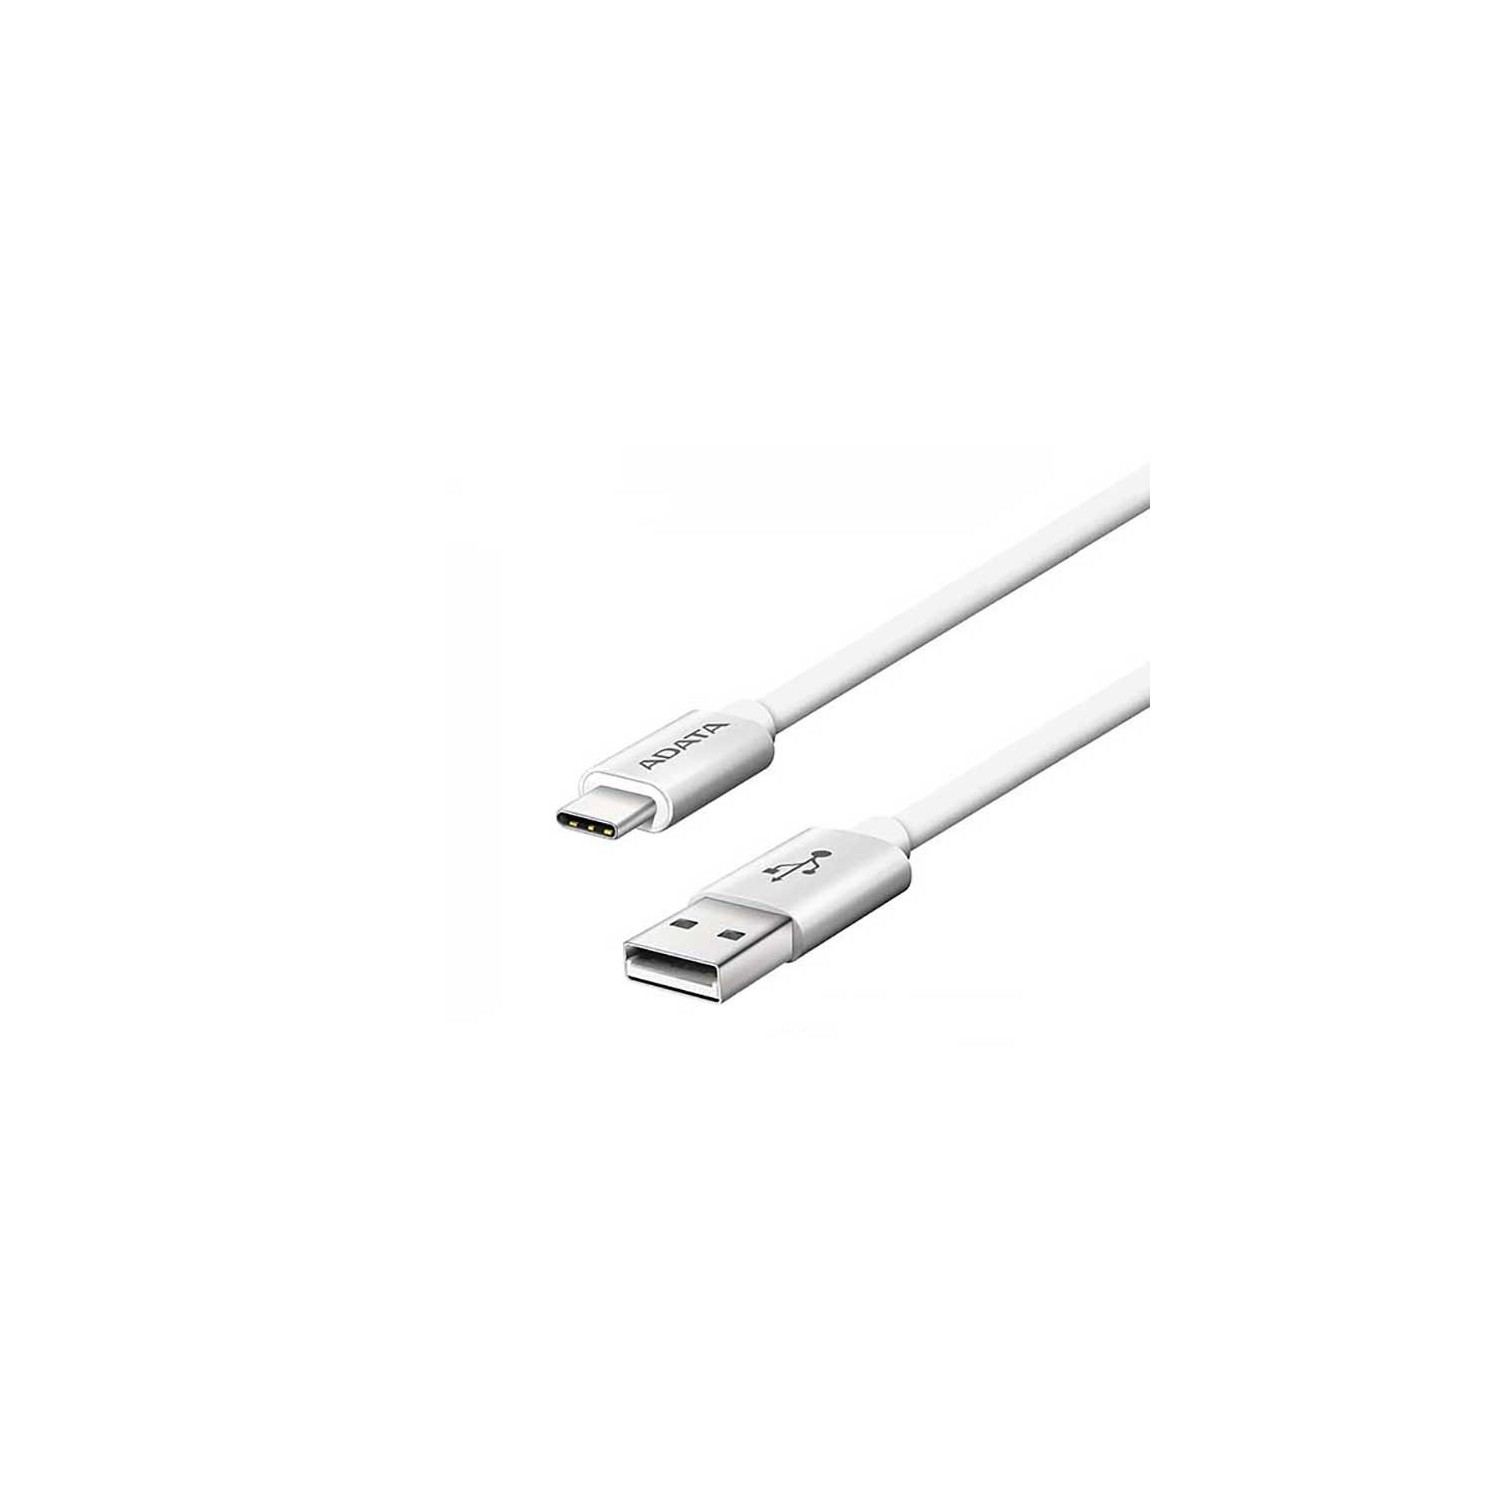 DATA CABLE - ADATA USB Type-C 3.1 Data Sync and Charge Silver 1m